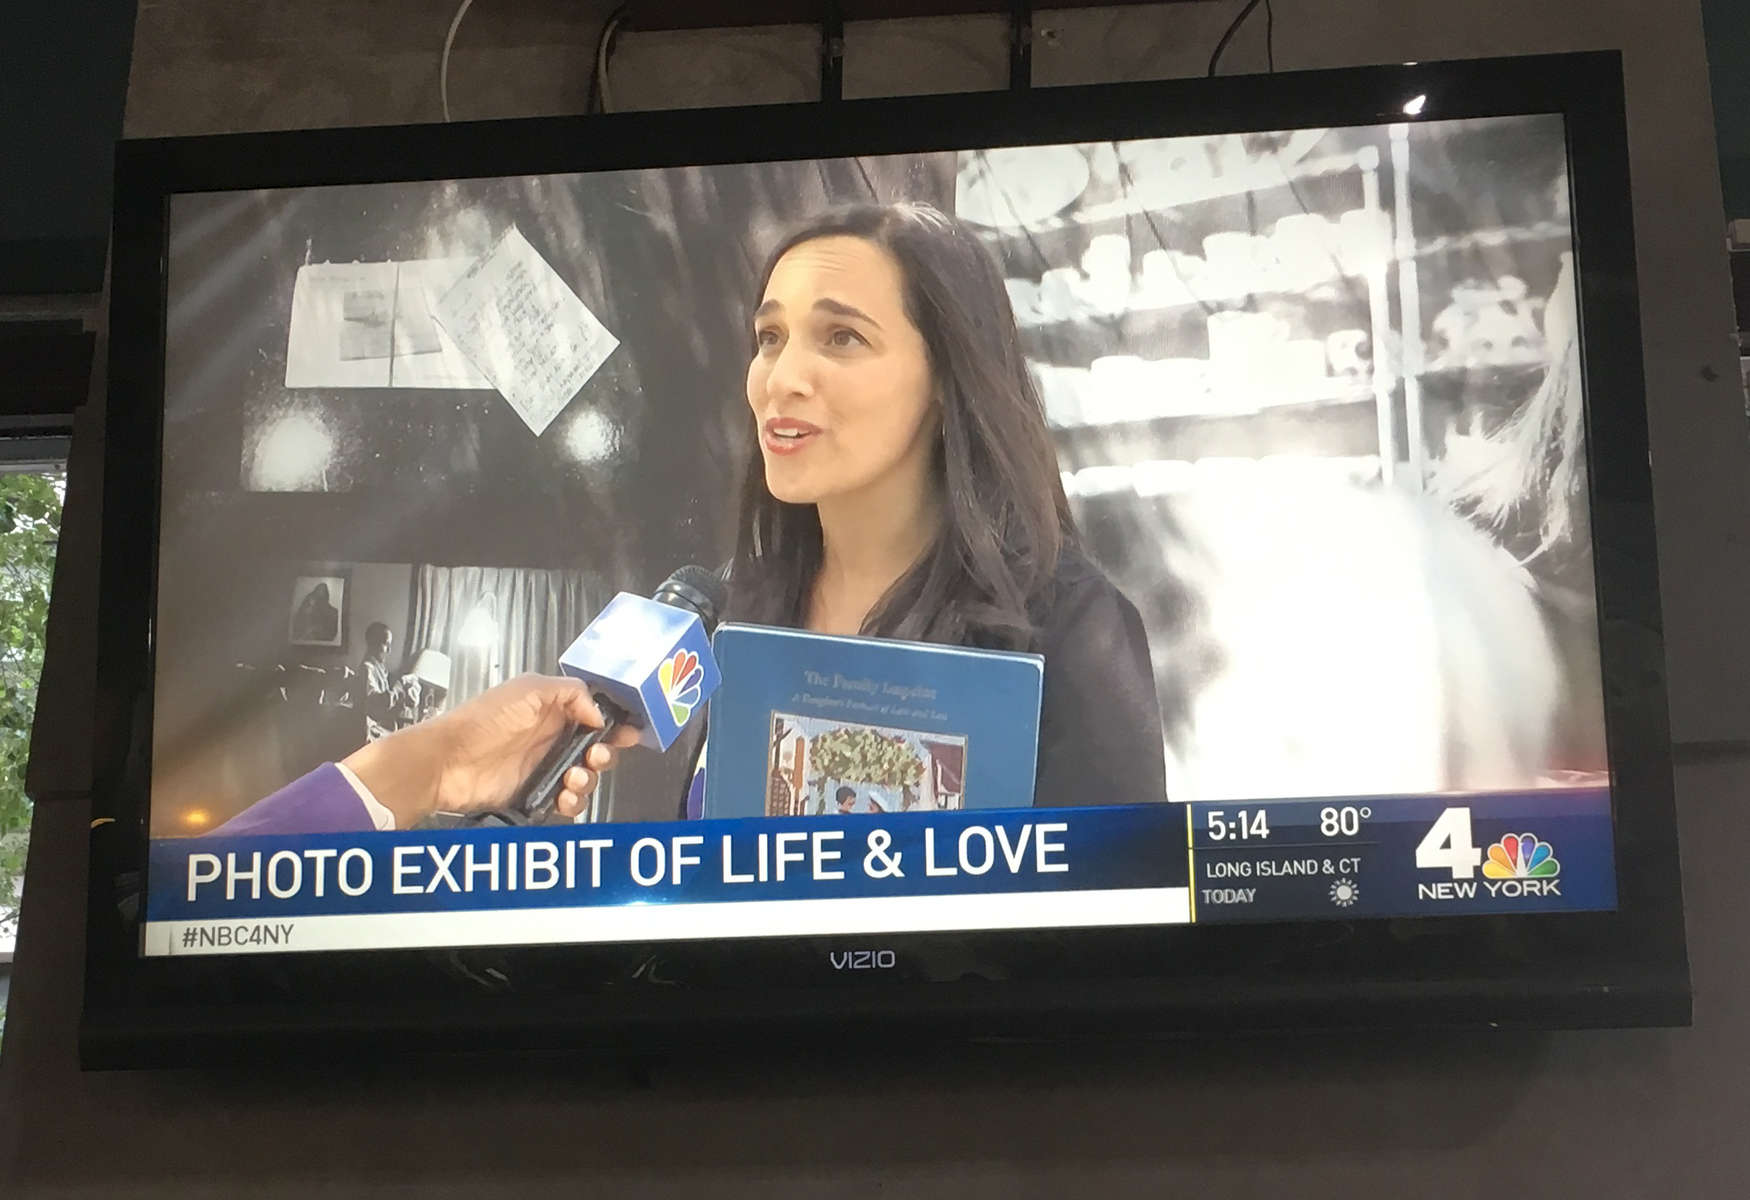 I love my local news, so getting to share my story and invite people to my first public art exhibition at the same time was sort of a dream. The exhibit is up until October 2017 and is hanging along a fence on Washington Street in DUMBO. Check it out if you are in town! Shout out to my old friend Hilary Weissman who made this a reality.Watch it here